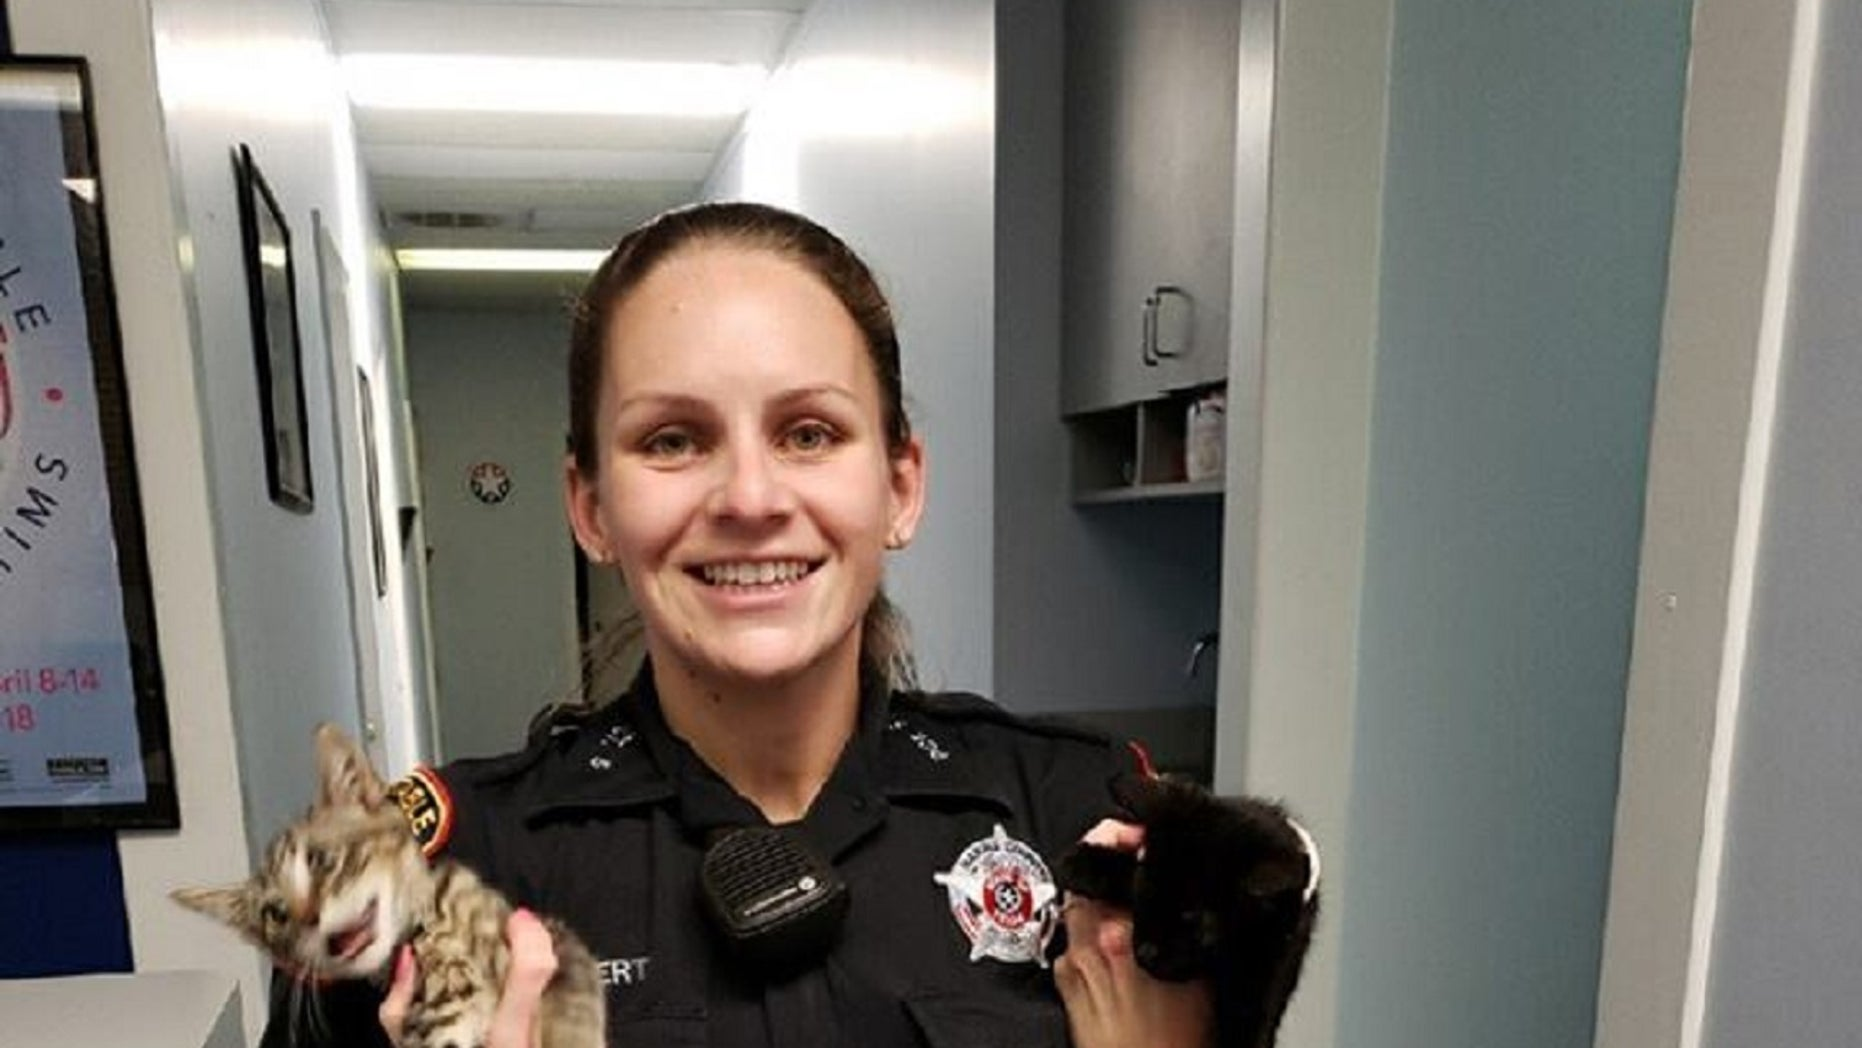 A Texas deputy found several kittens in a gym bag last week, according to the Harris County Constable's Office Precinct 5.